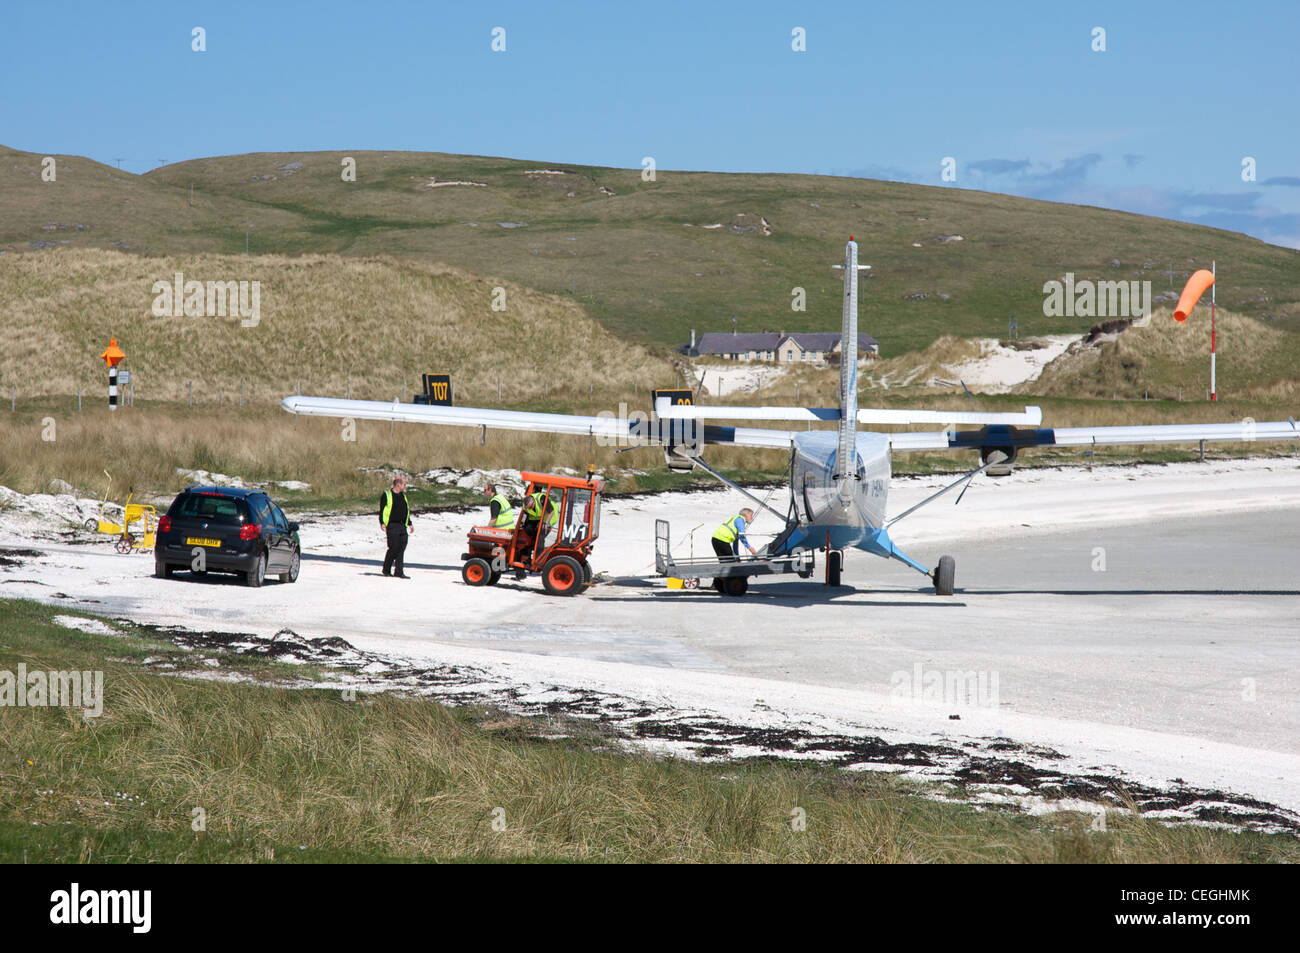 Collecting the luggage from a plane on Traigh Mhor beach, Barra airport, Outer Hebrides, Scotland, UK - Stock Image